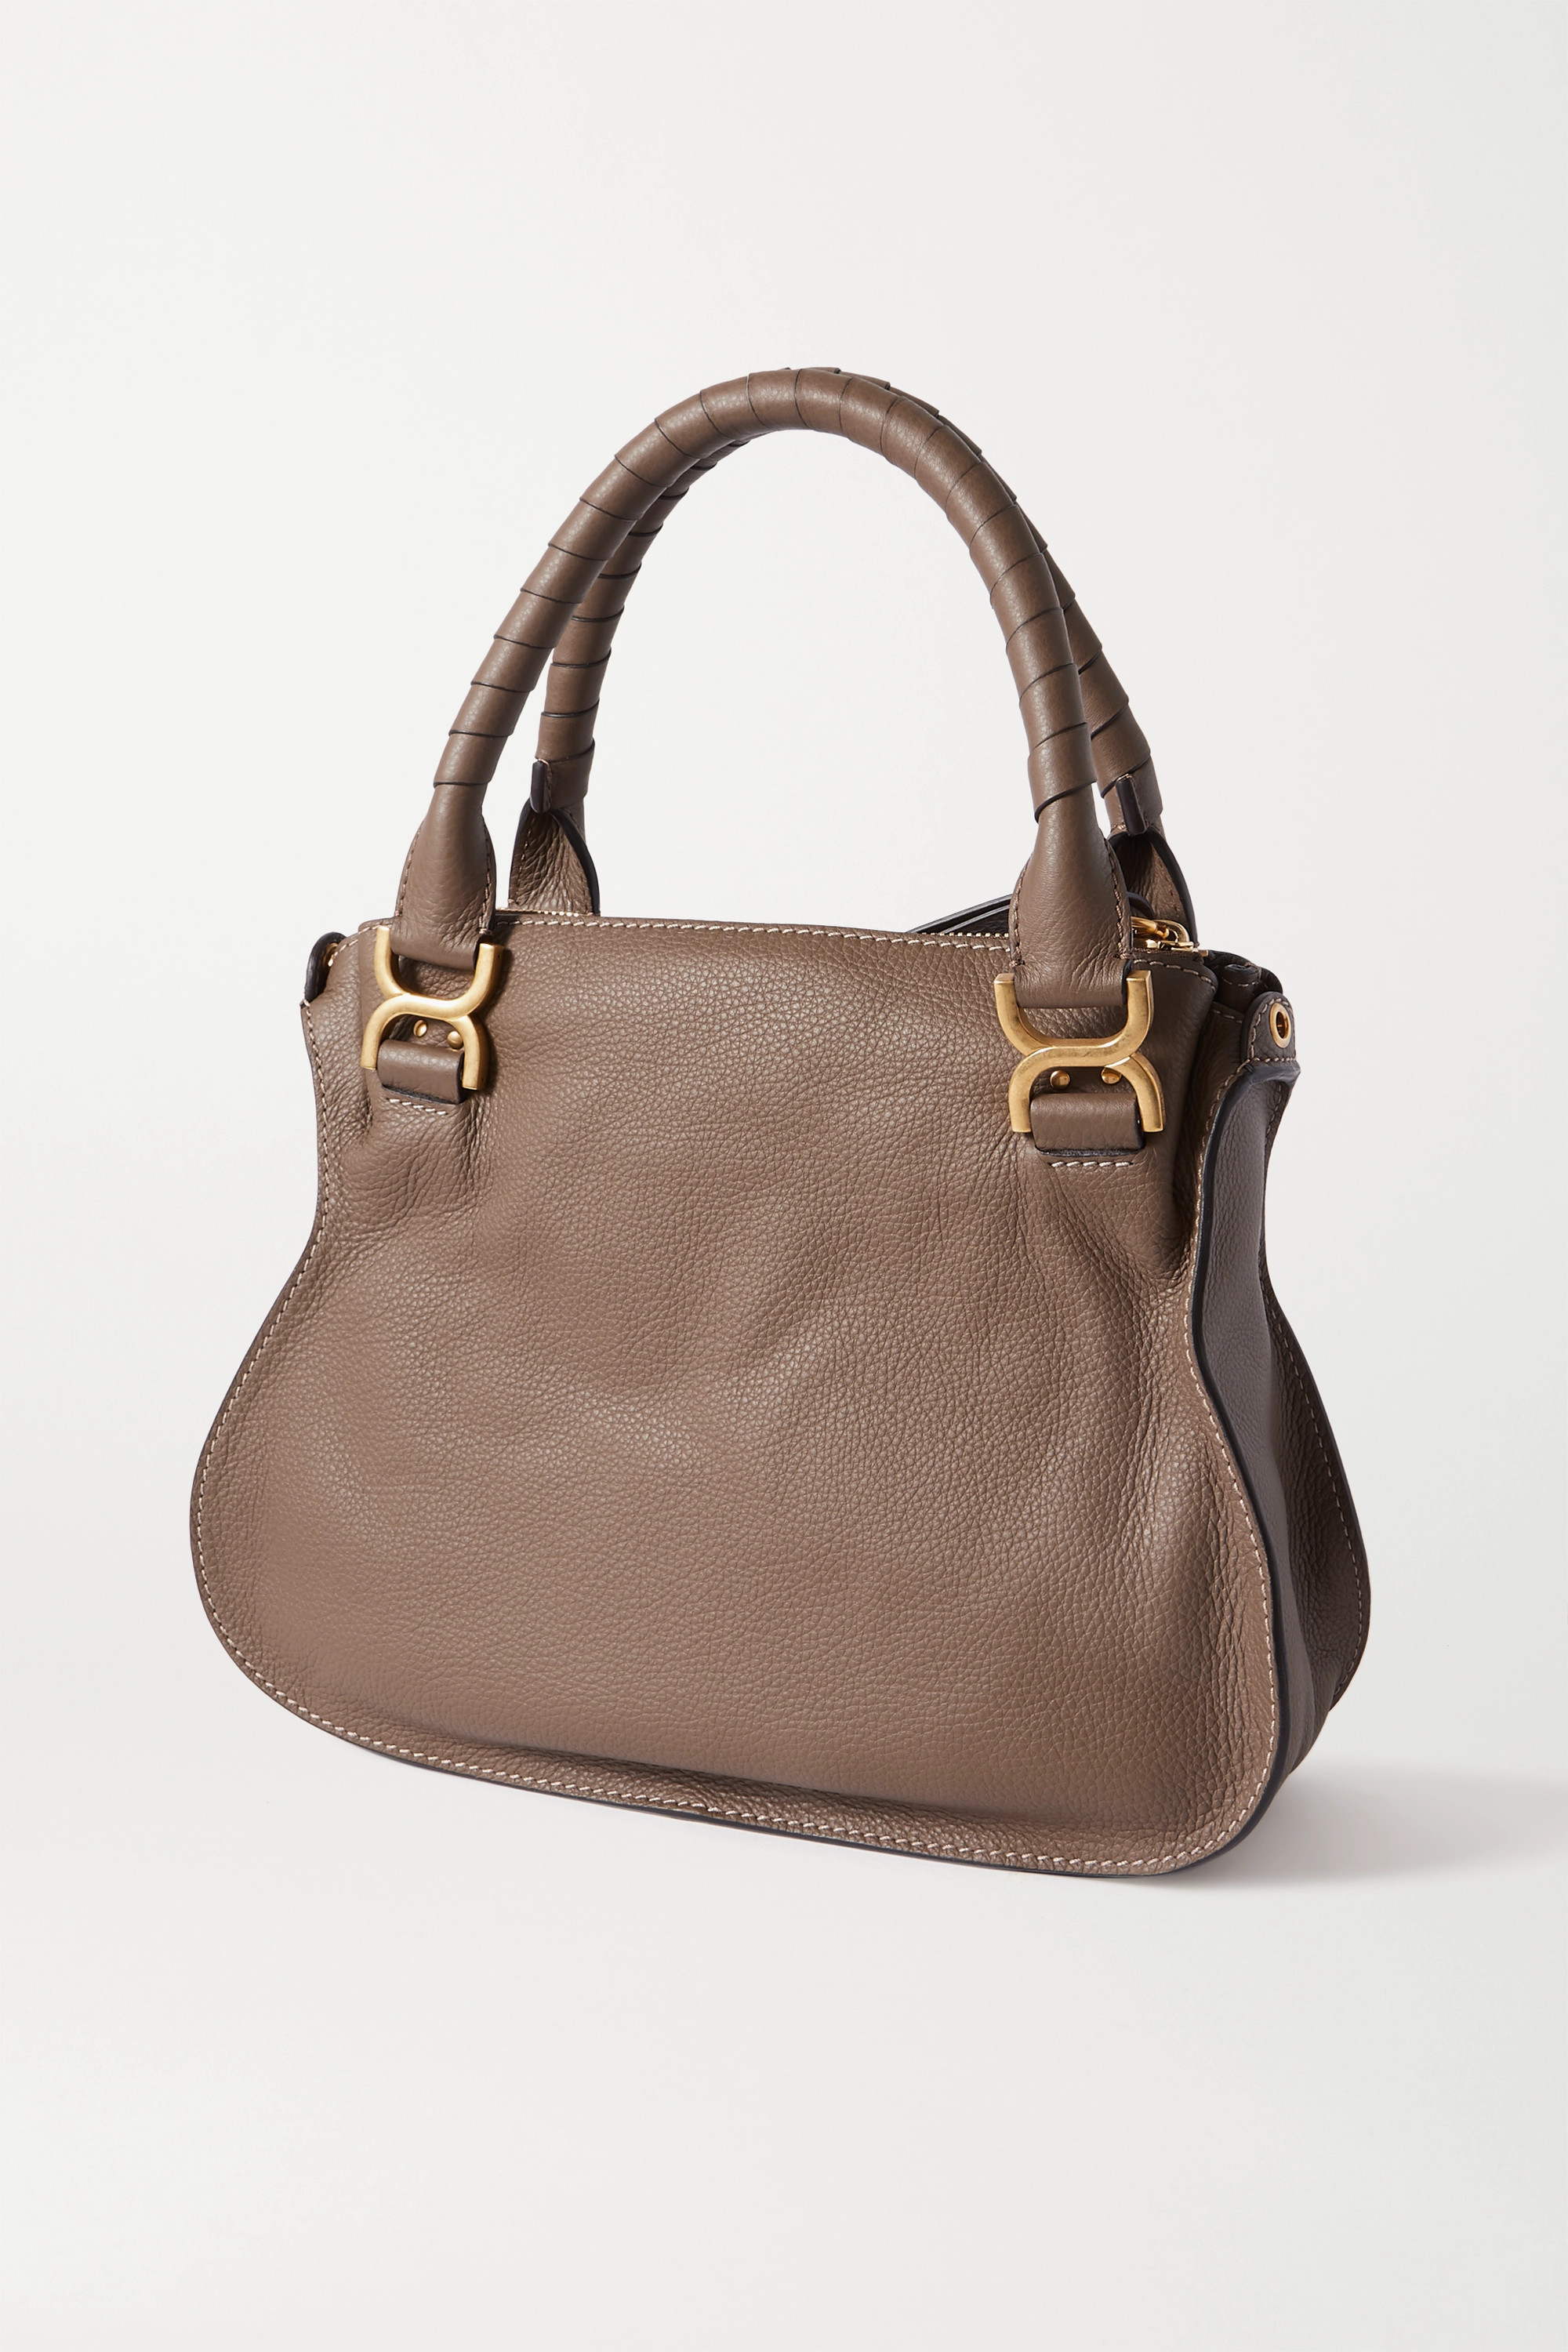 CHLOÉ Marcie medium textured-leather tote